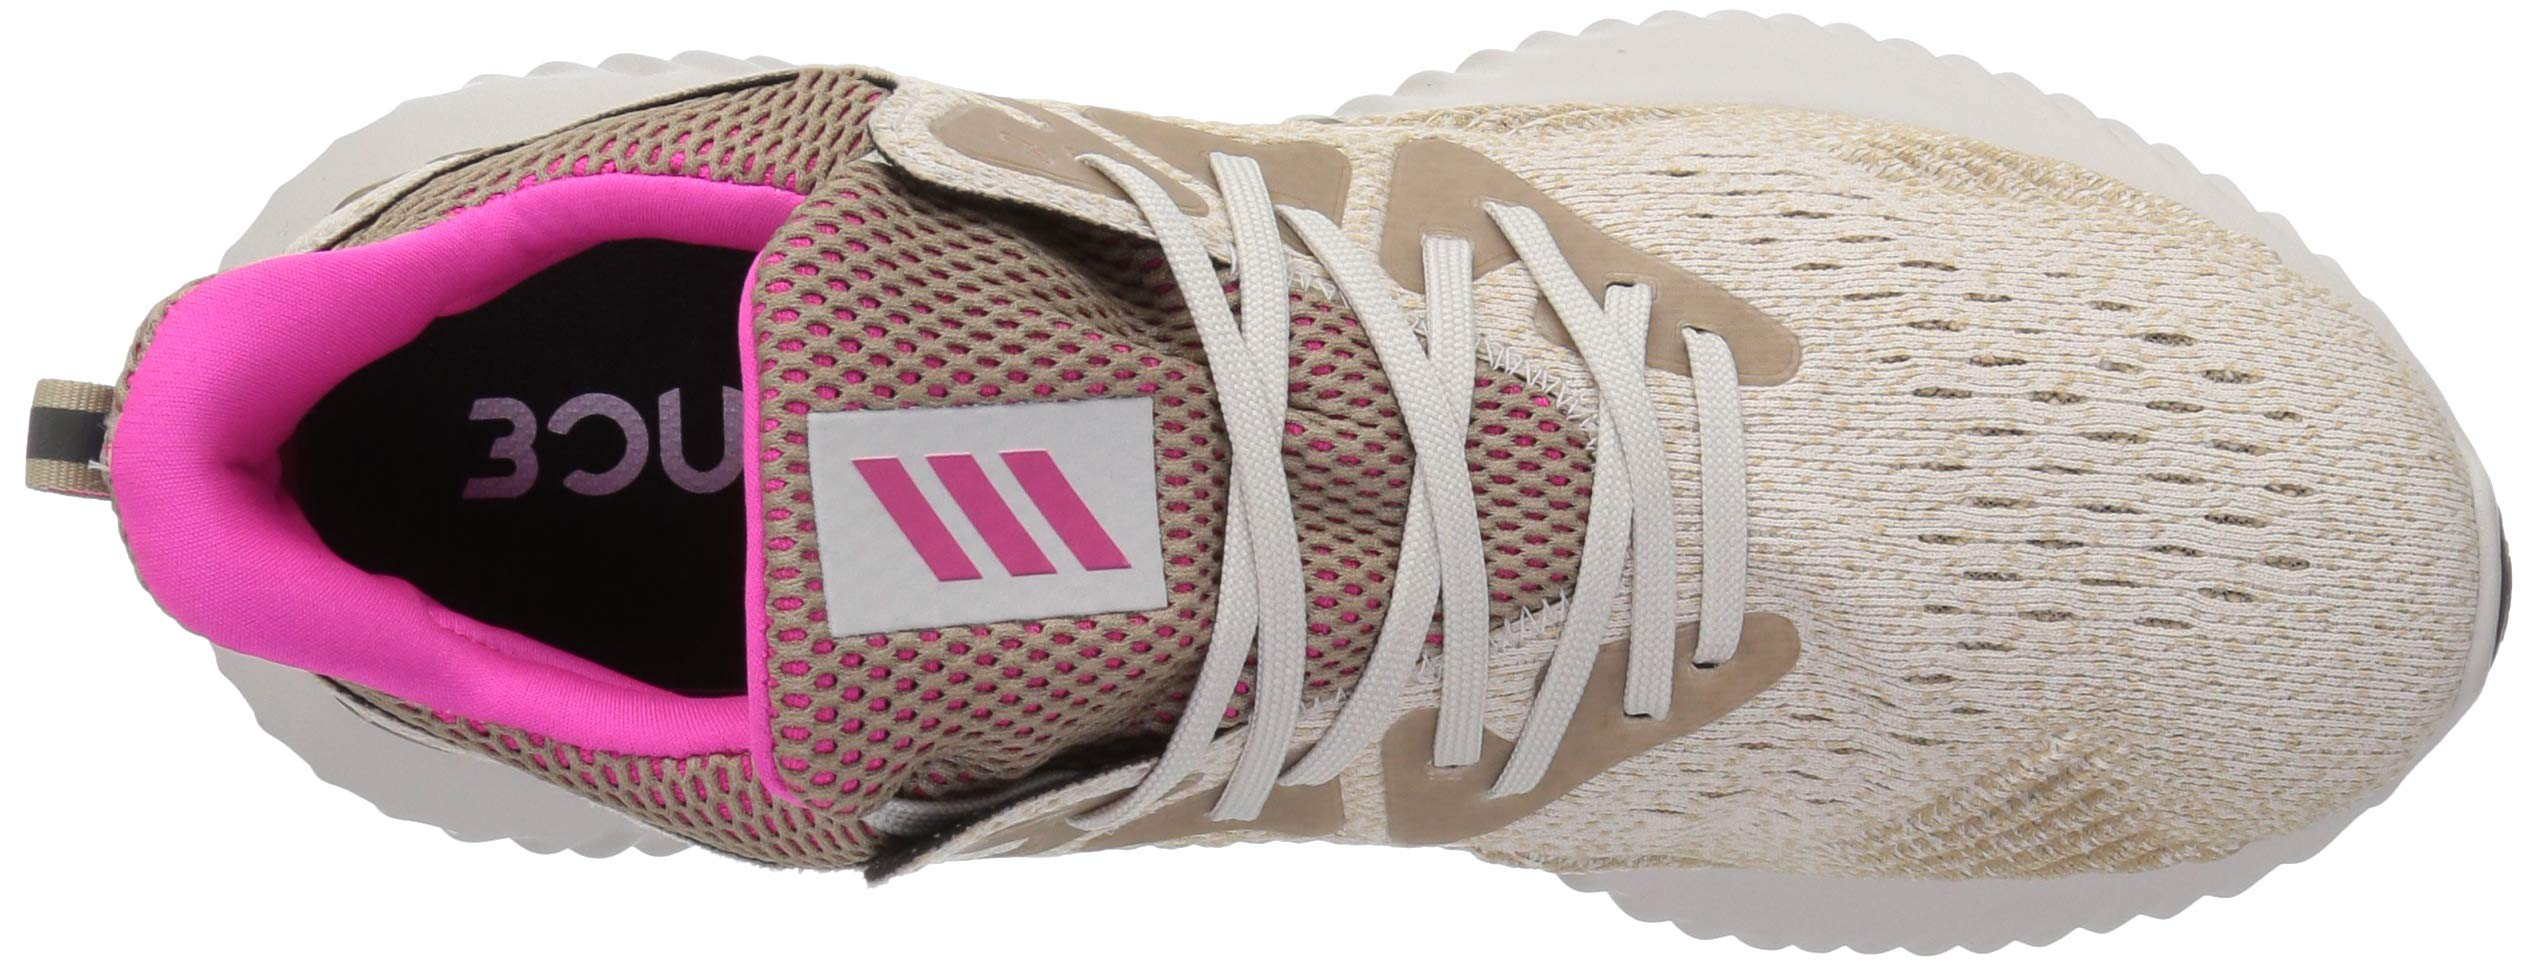 adidas Men's Alphabounce Beyond Running Shoe, Chalk Pearl/Shock Pink/Trace Khaki, 7.5 M US by adidas (Image #8)